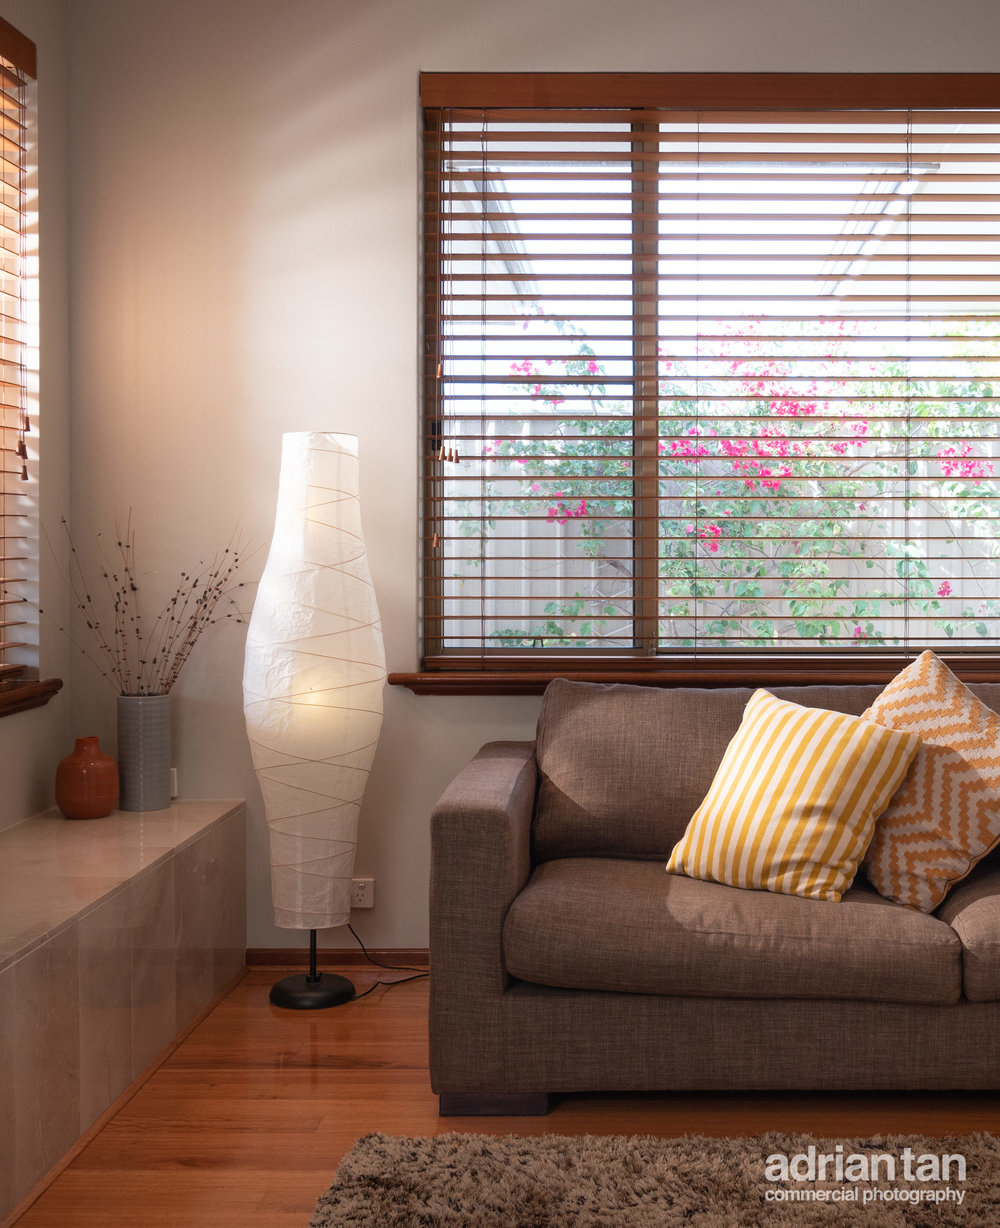 Balance the natural light with artificial lights